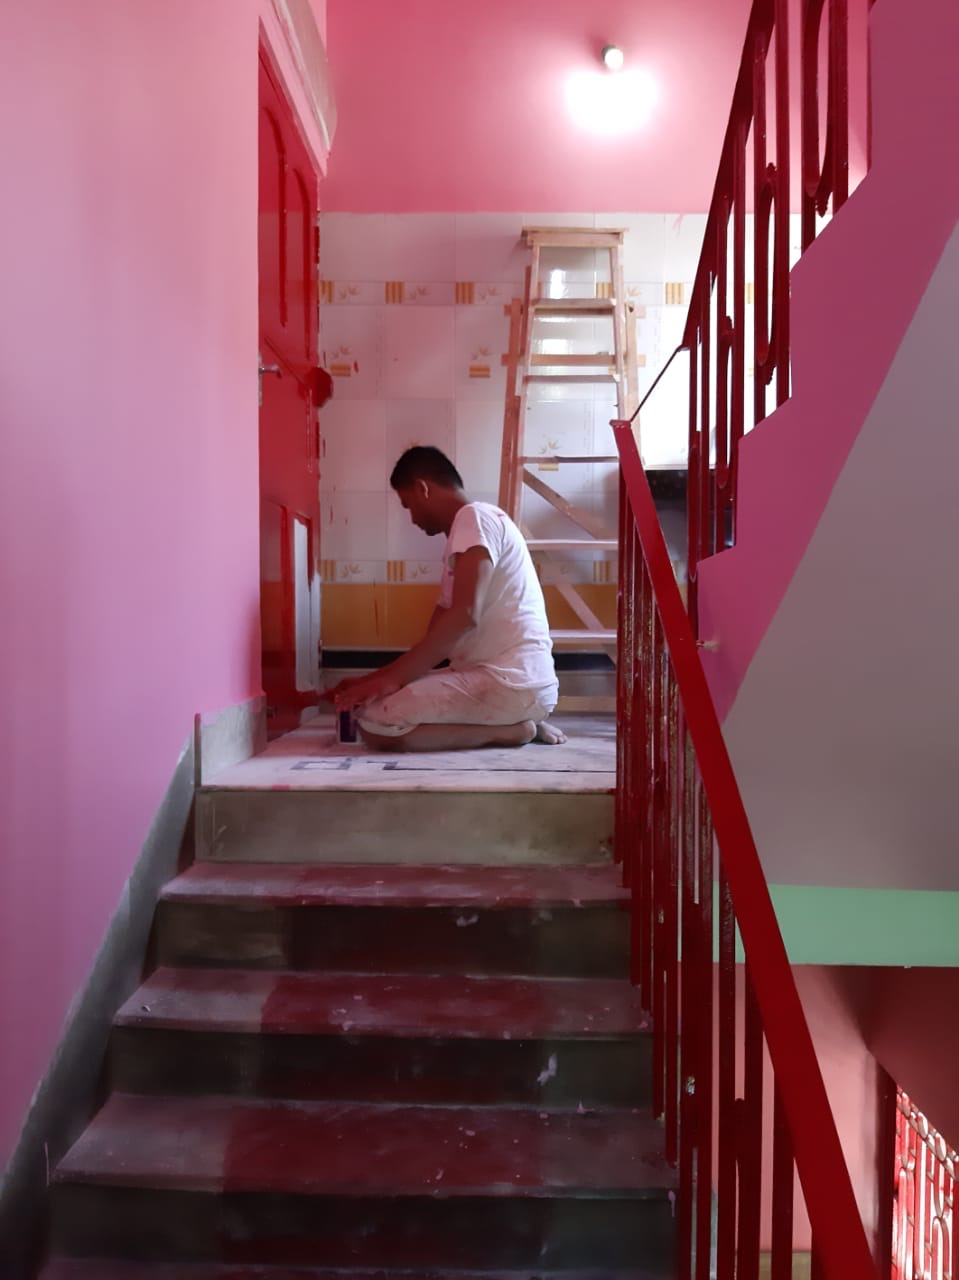 shuktara - painting the stairway